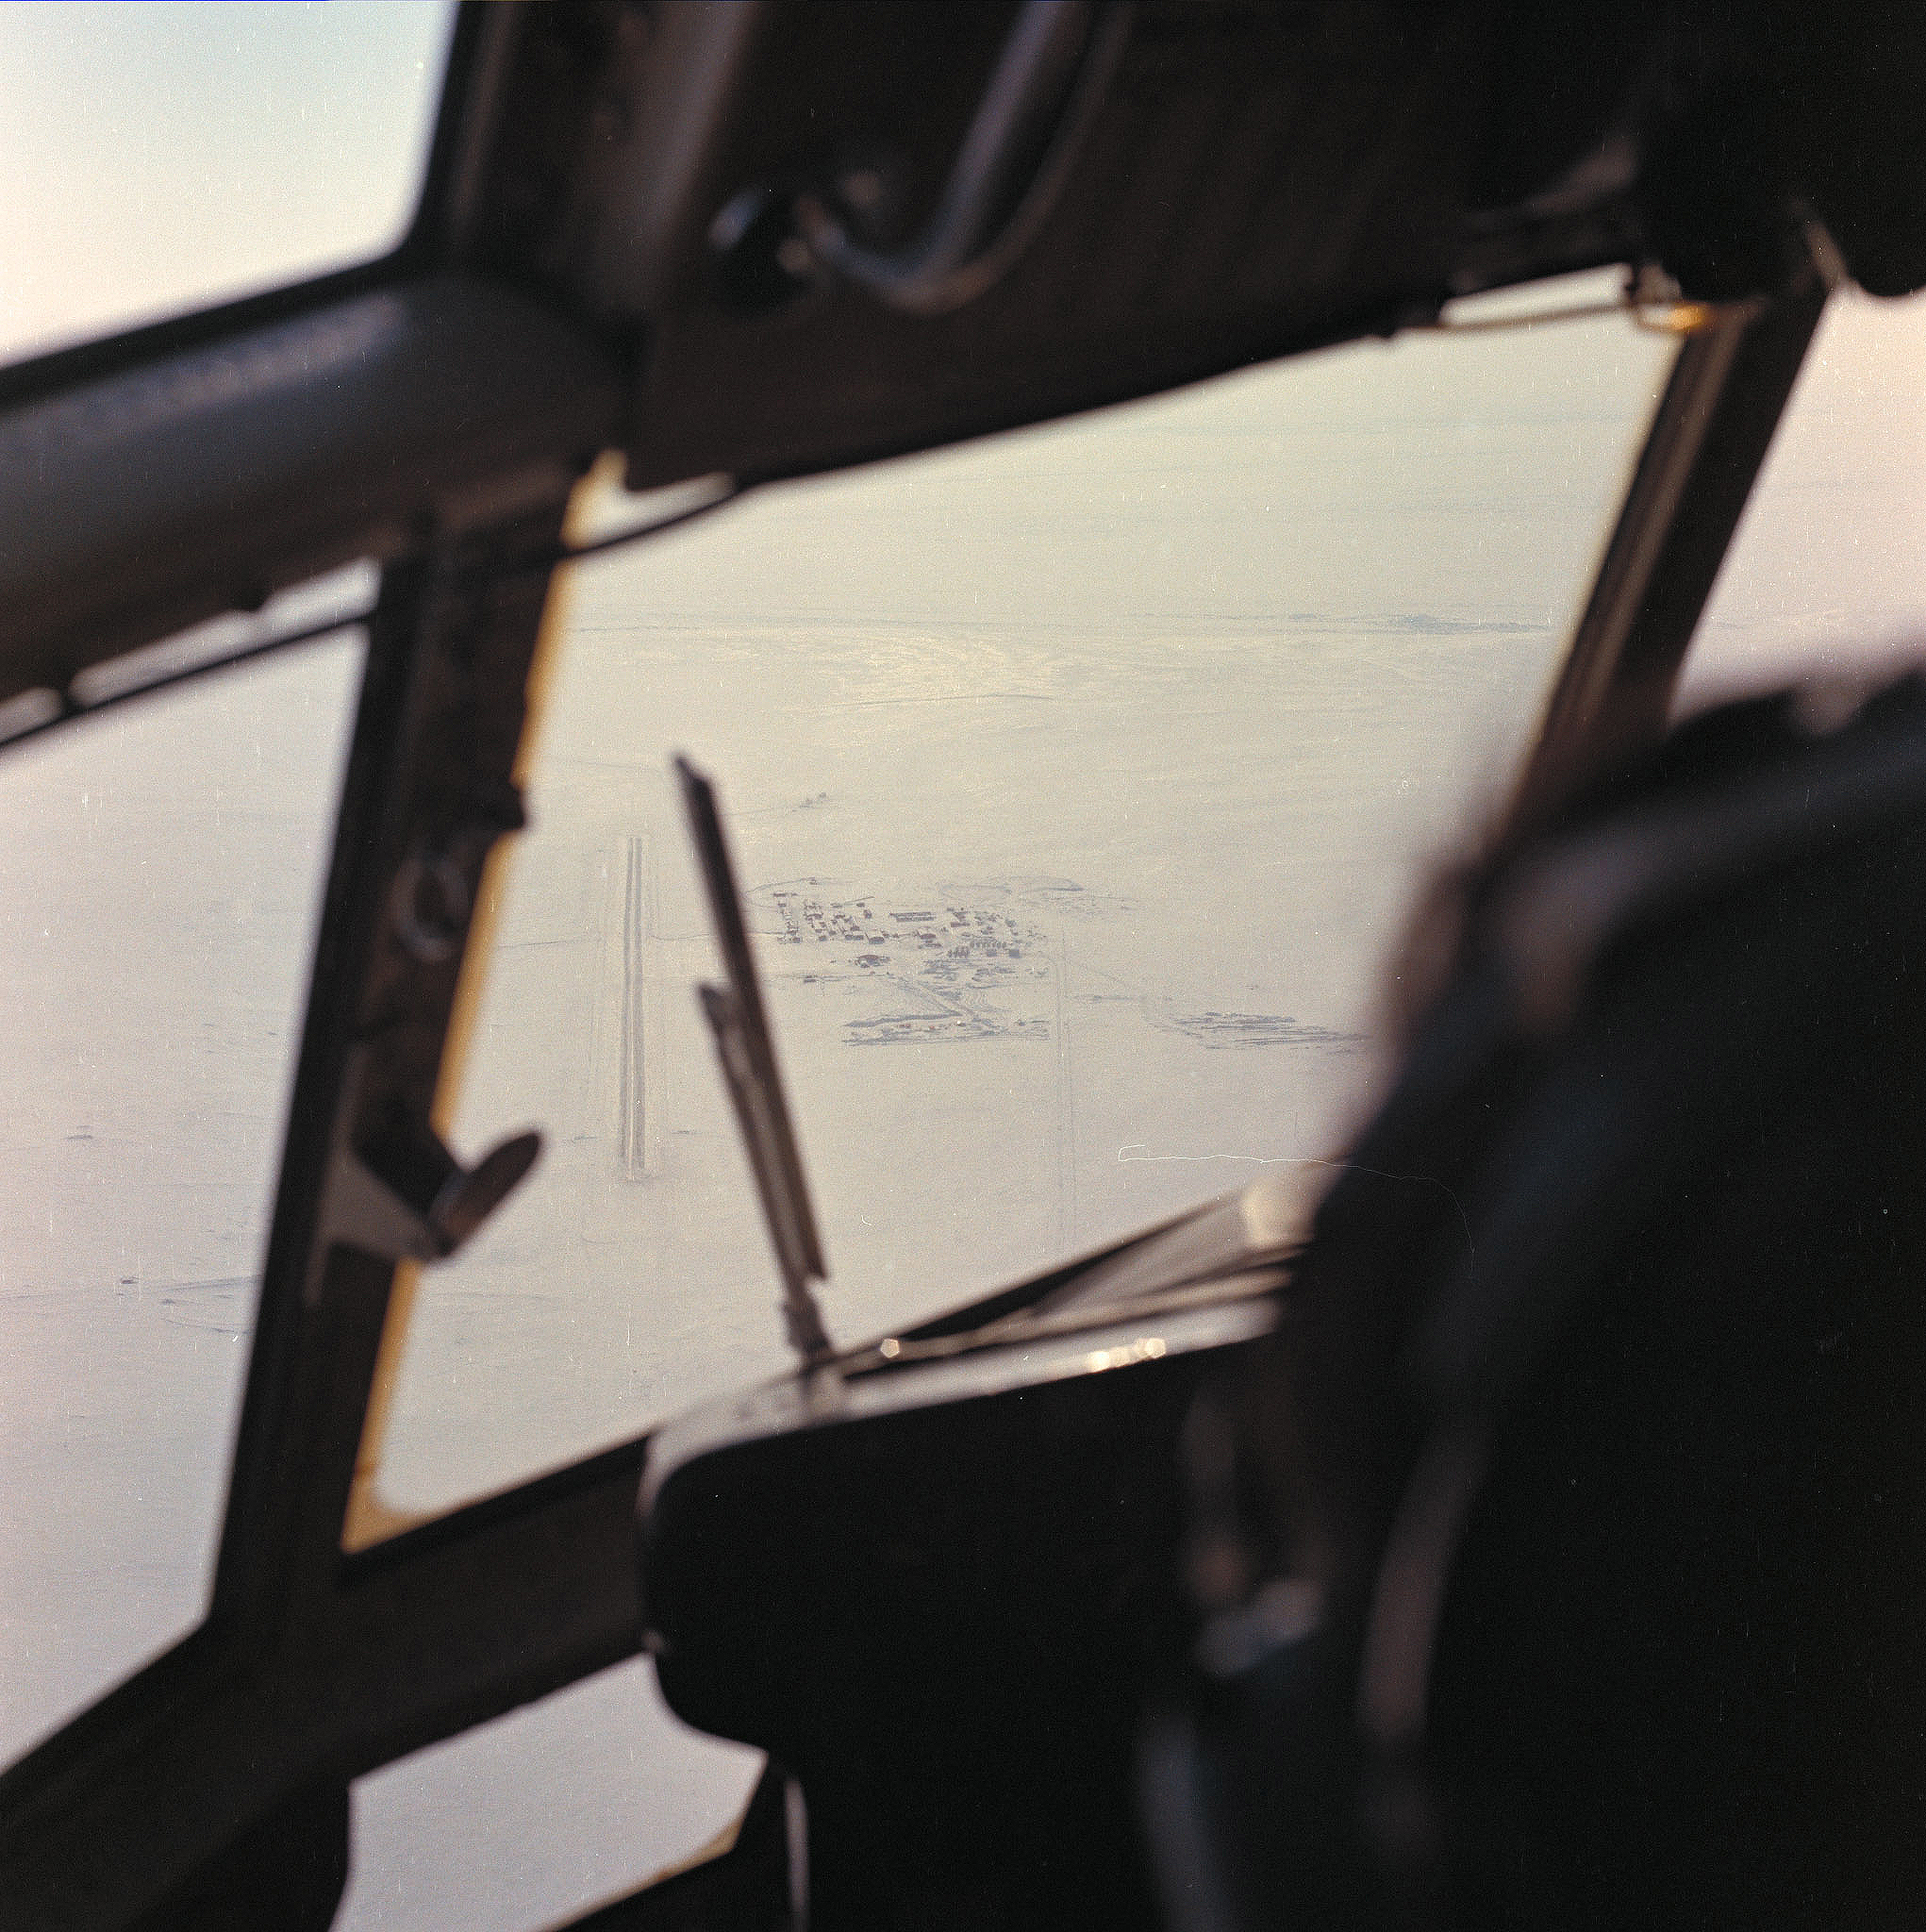 In this undated photograph, the first glimpse of Canadian Forces Station Alert, Nunavut, is seen from the cockpit of a CC-130 Hercules aircraft. PHOTO: DND